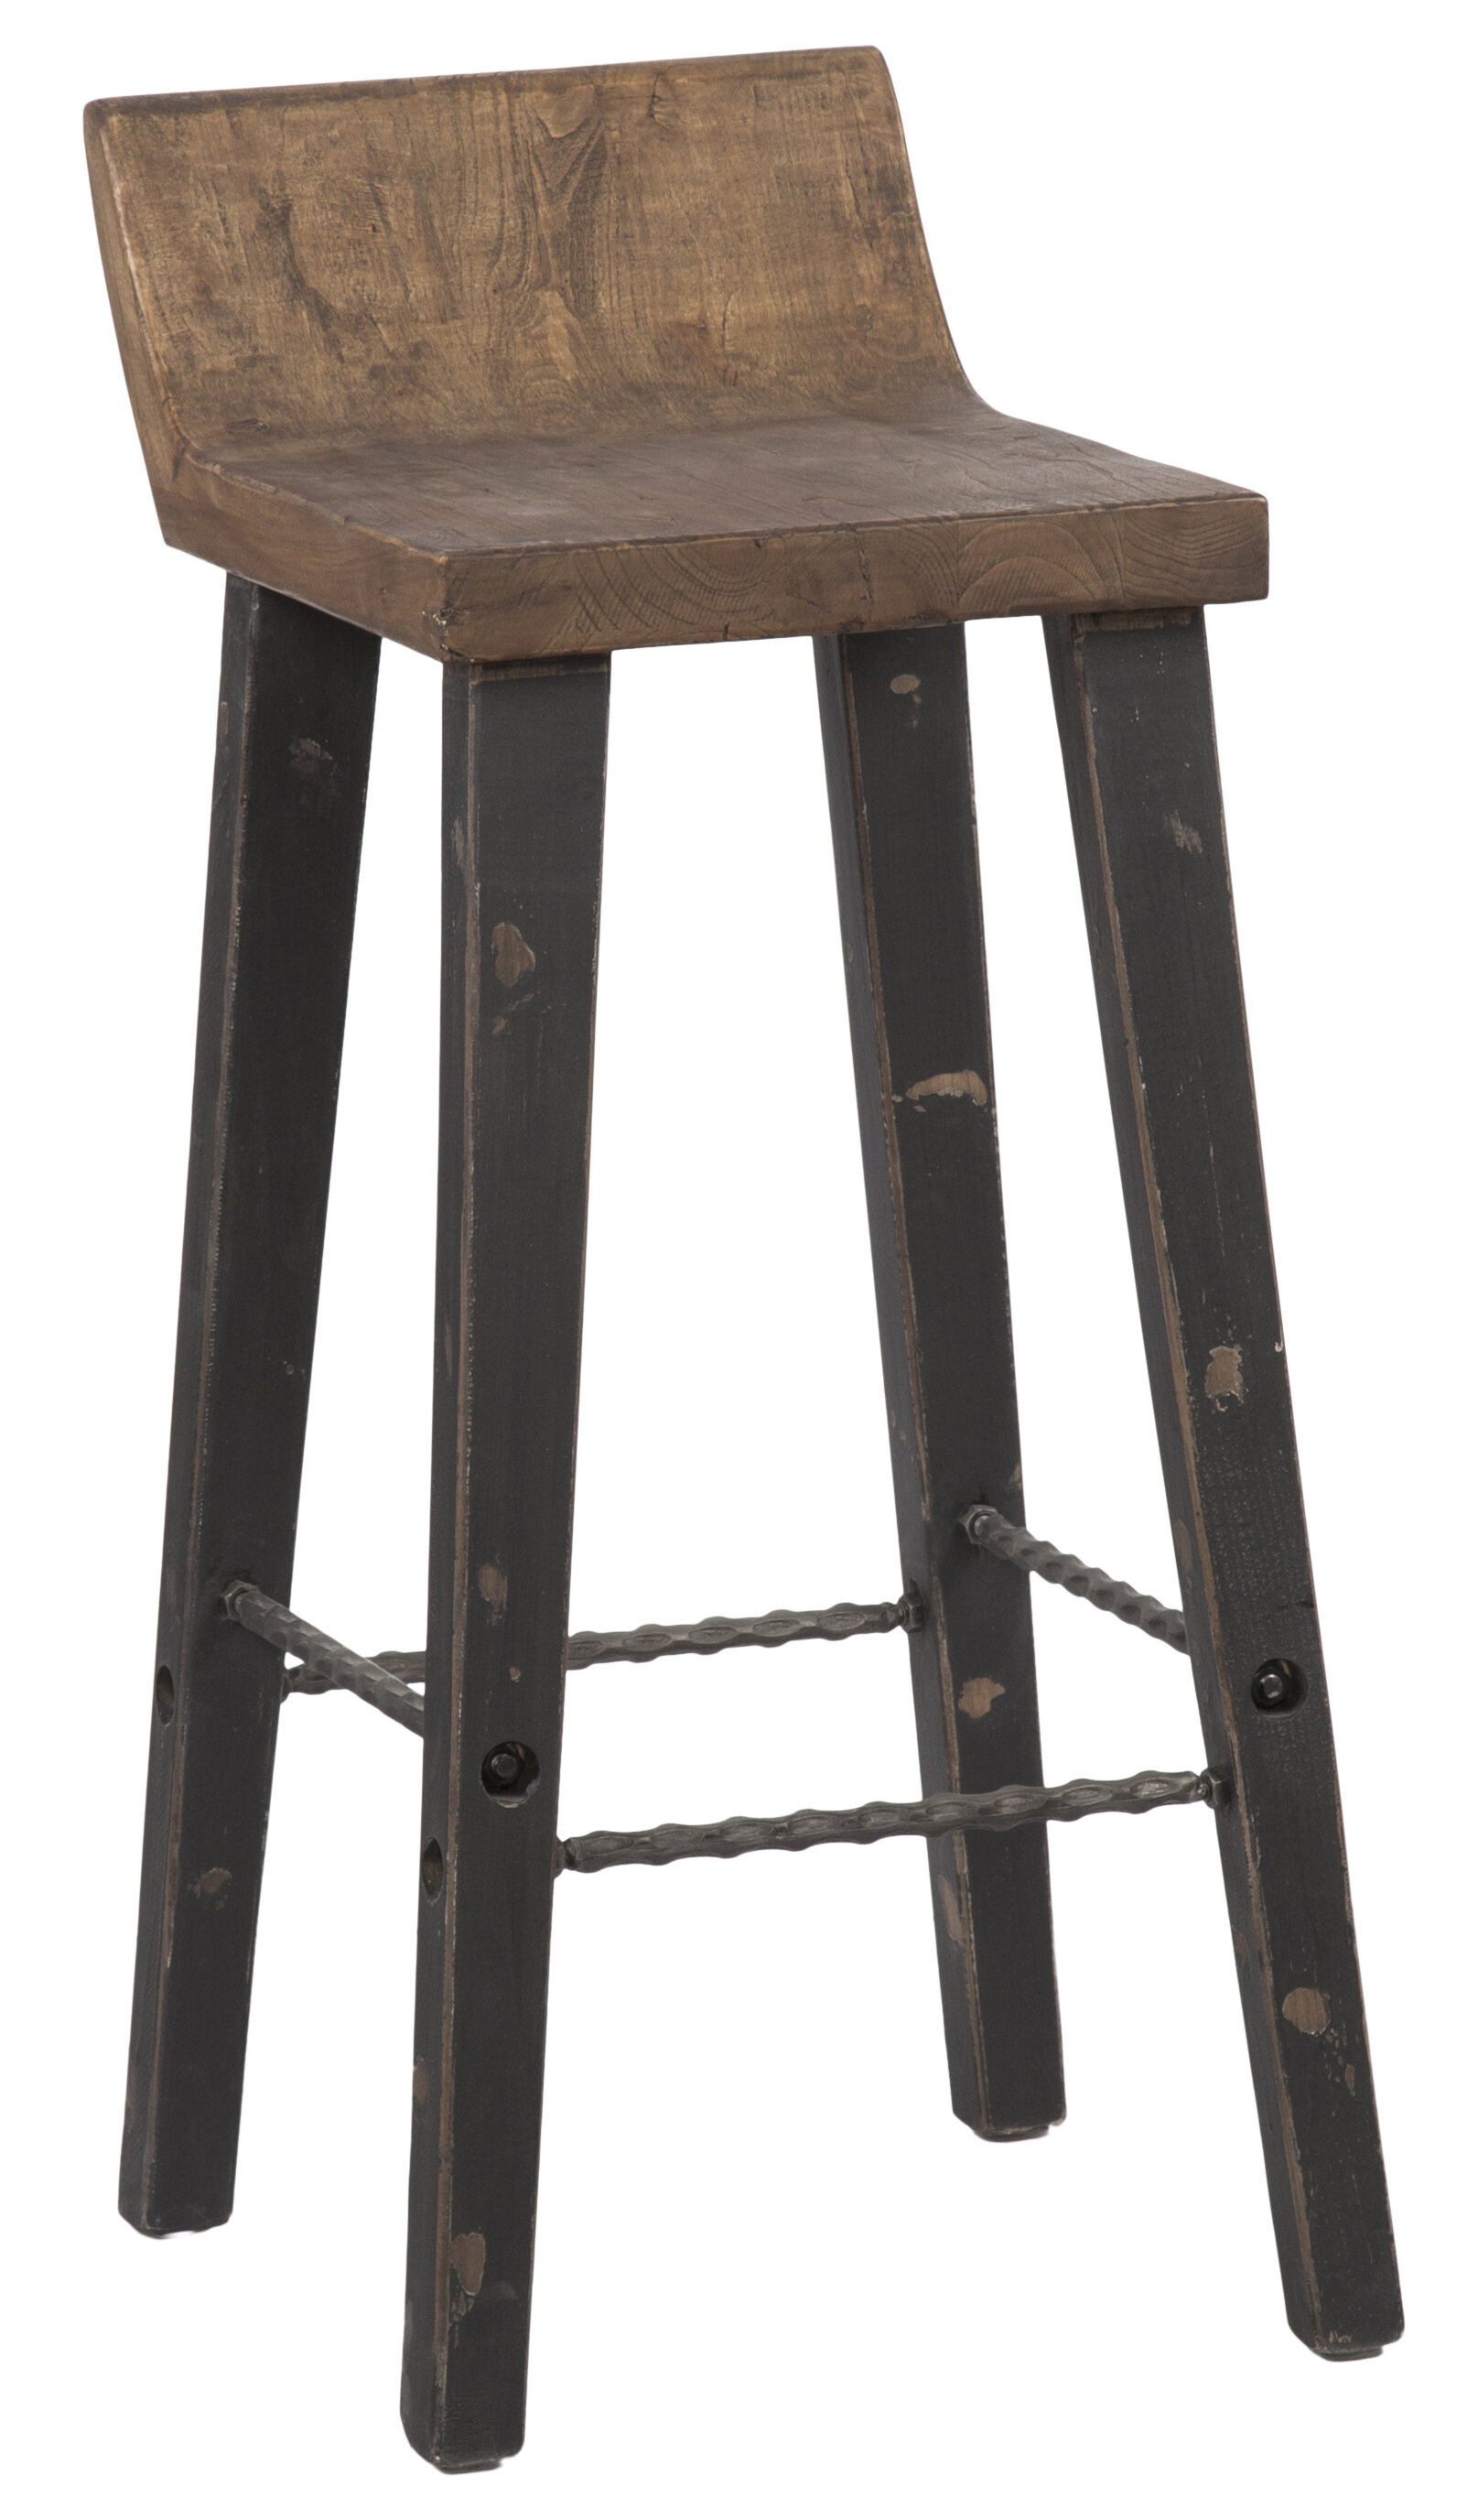 Feinberg bar counter stool reviews birch lane